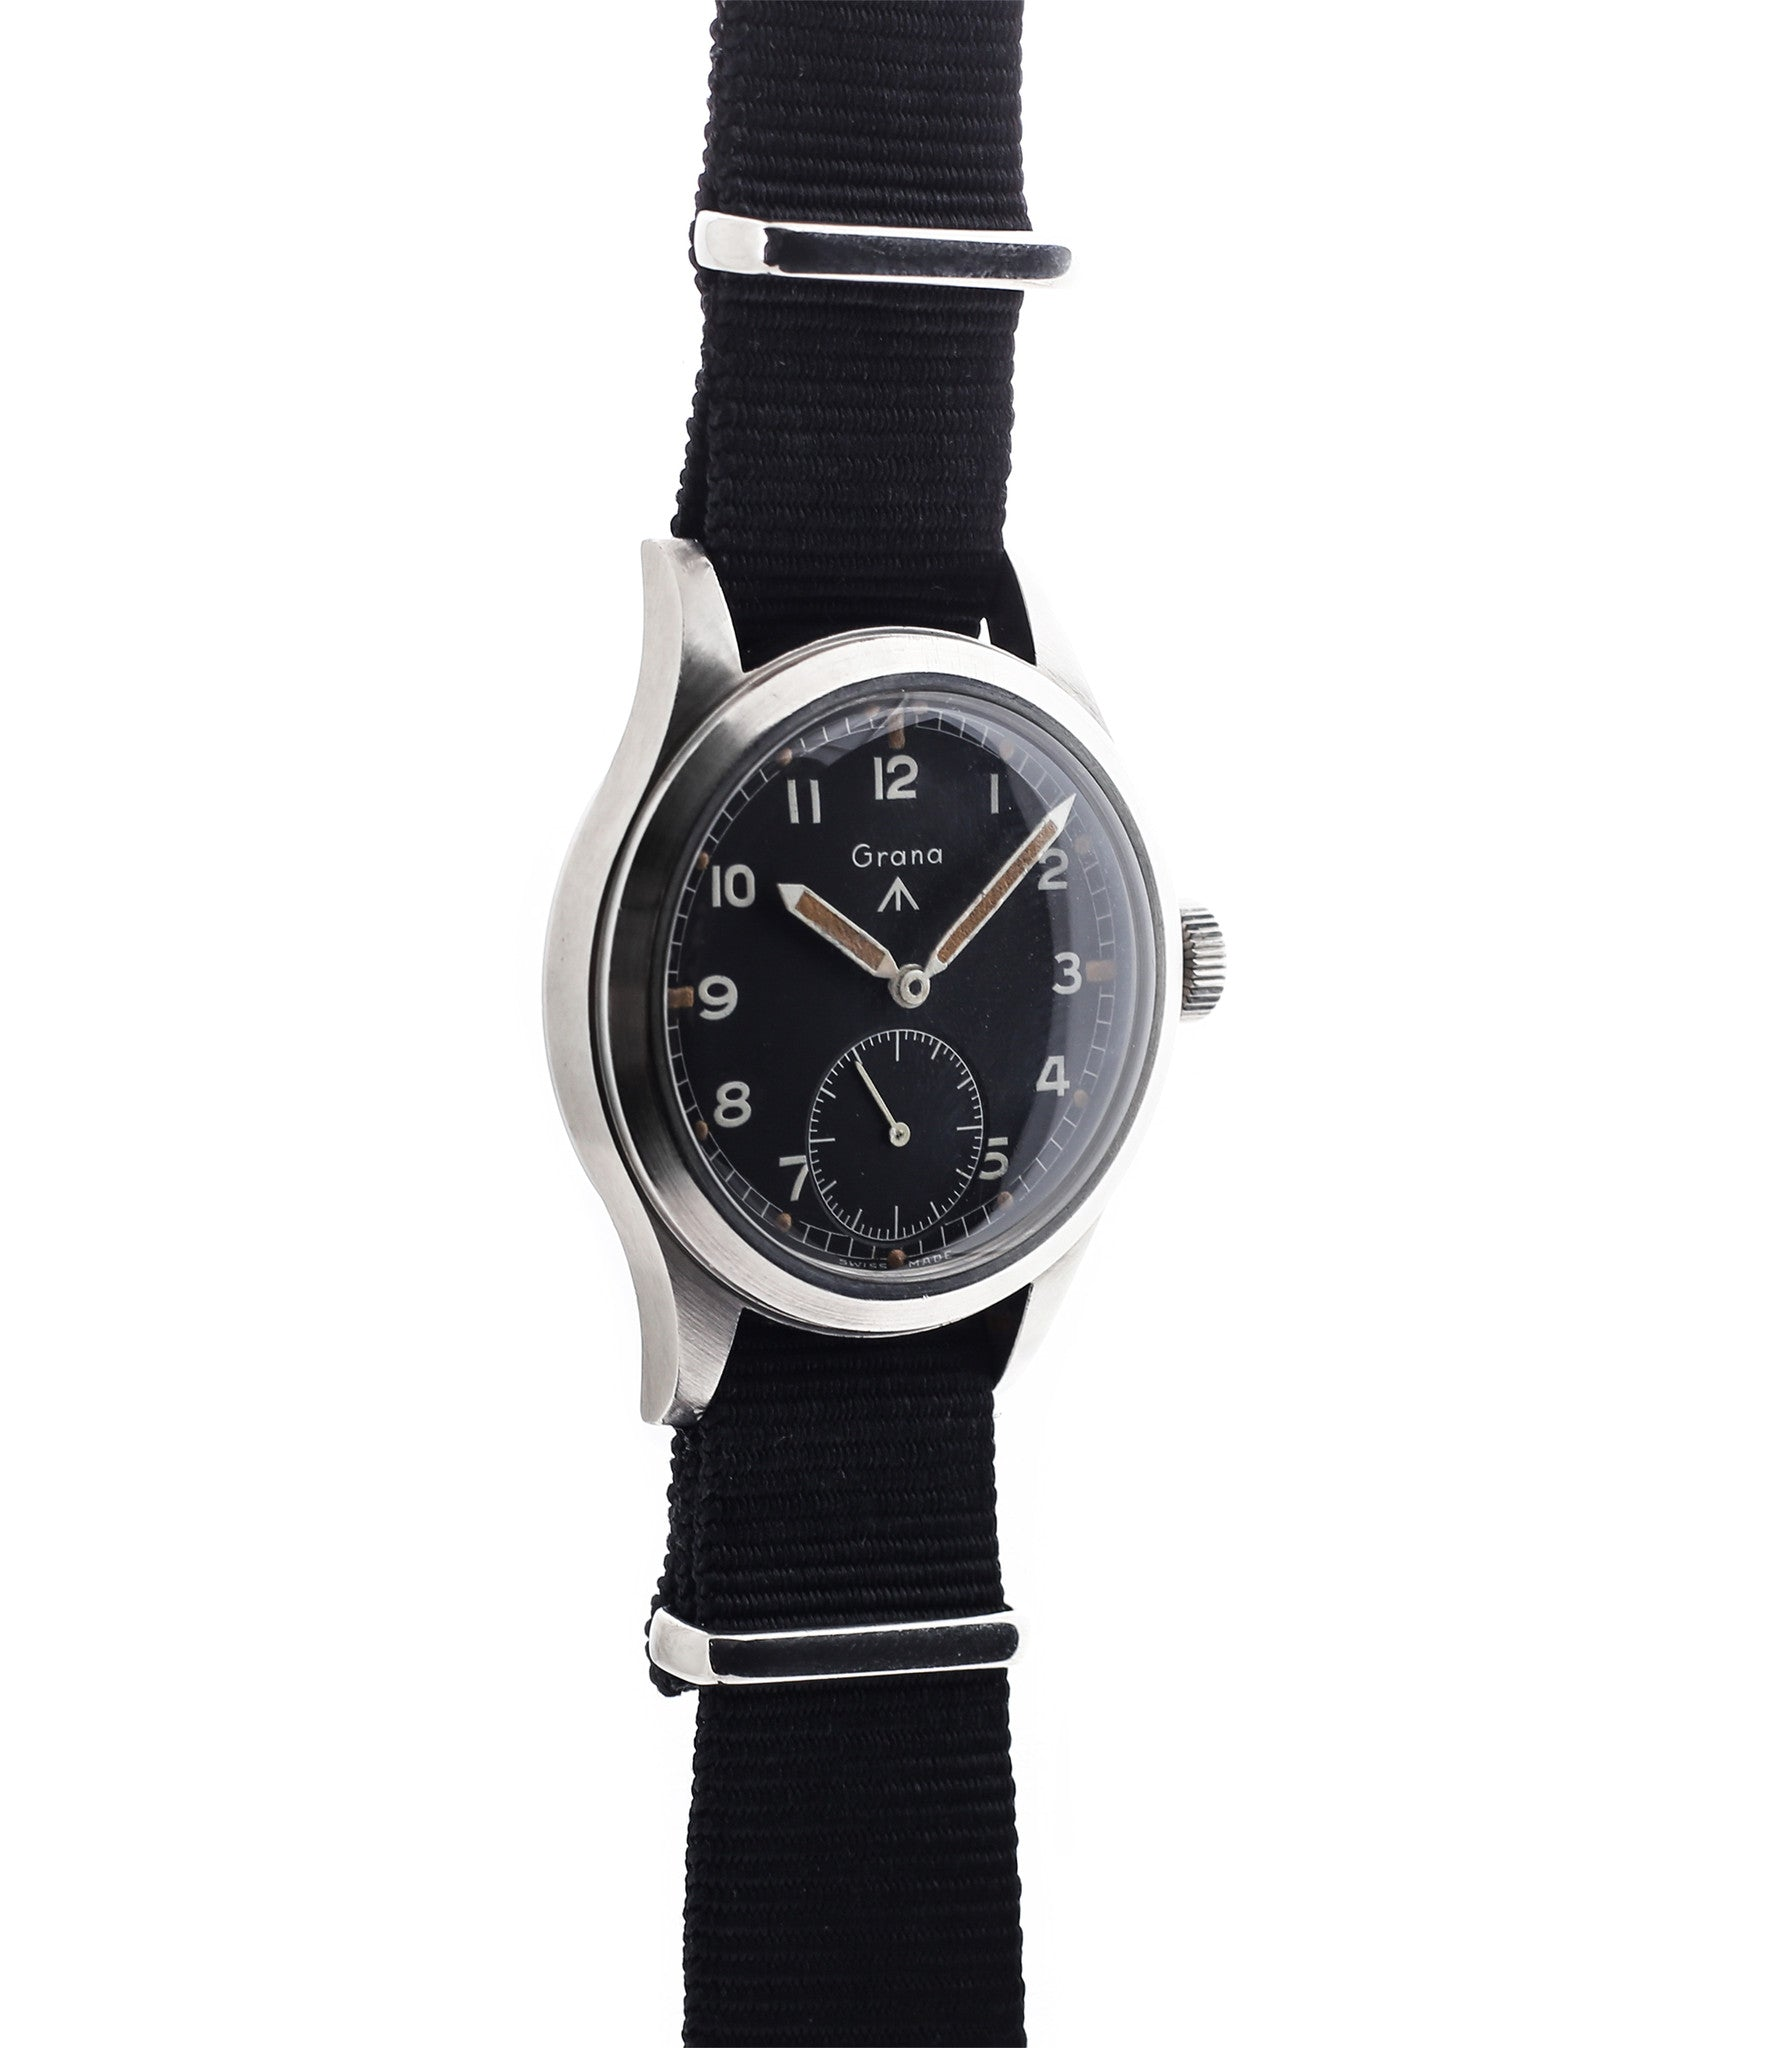 buy rare W.W.W. Grana M18565 Dirty Dozen military watch unrestored black dial online for sale WATCH XCHANGE London